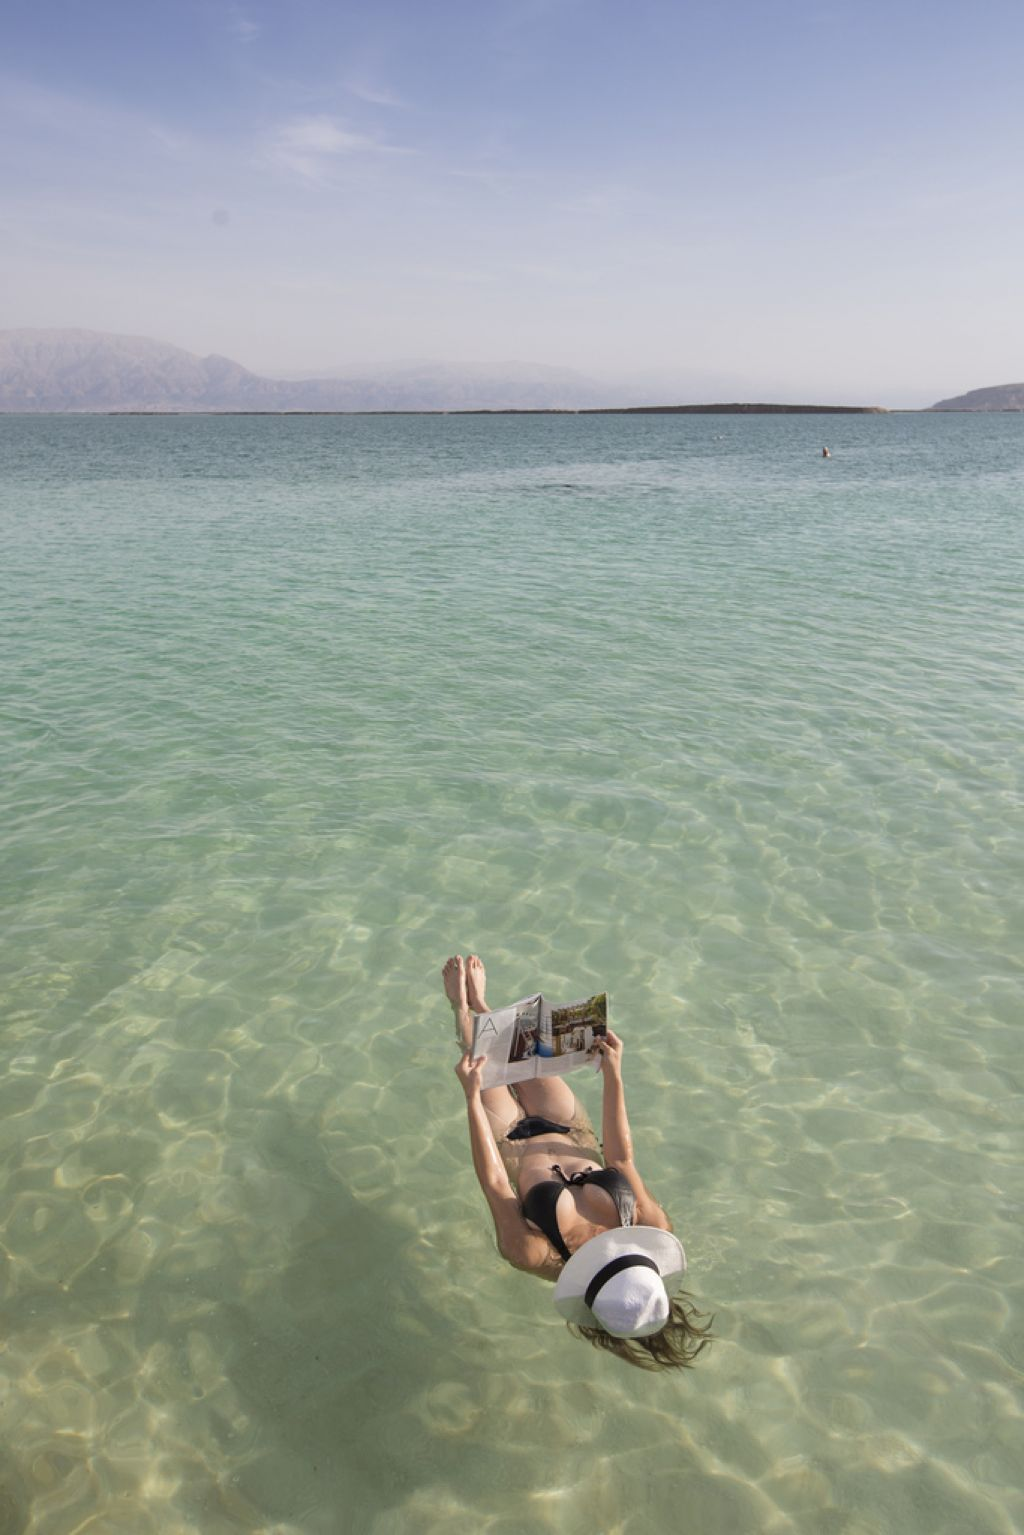 Floating On The Dead Sea By Itamar Grinberg